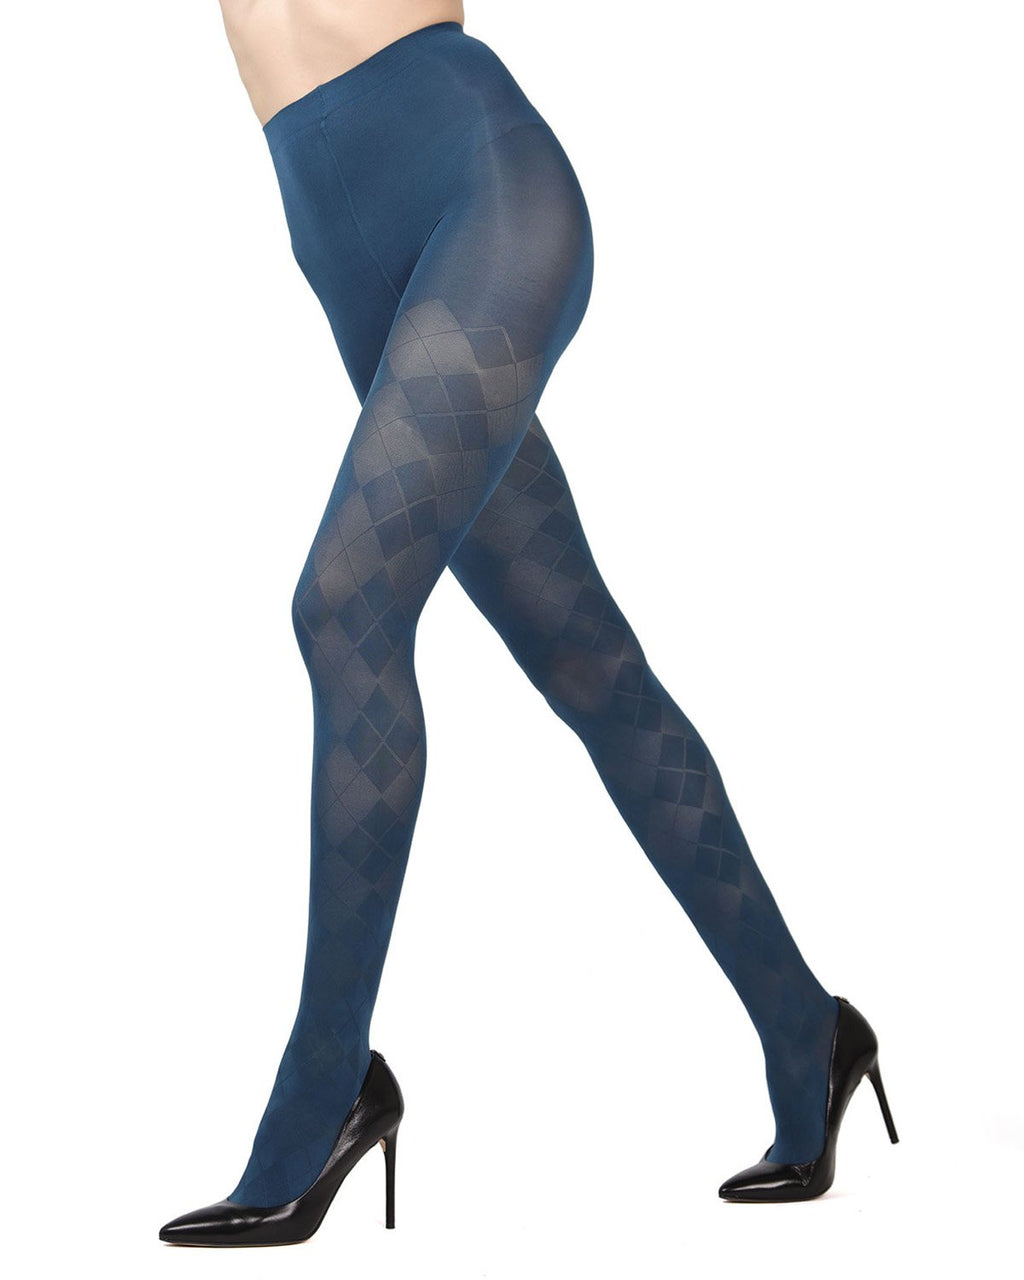 MeMoi Blue Smoke Argyle Opaque Tights | Beautiful Legwear for Women